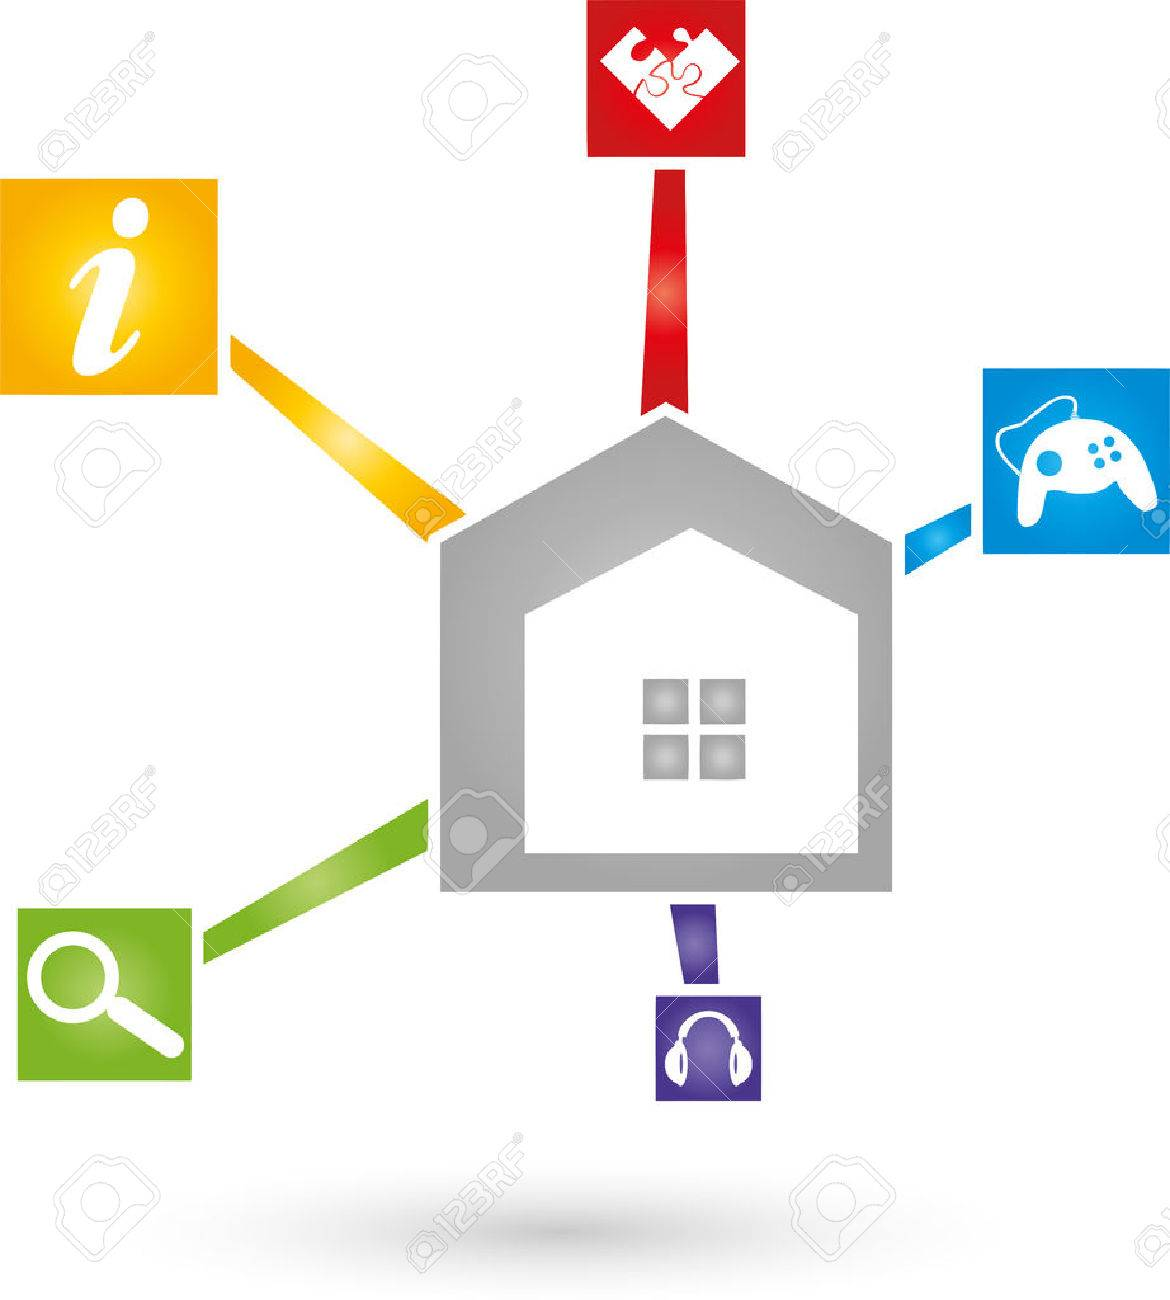 Home Network, IT, Service Royalty Free Cliparts, Vectors, And Stock ...